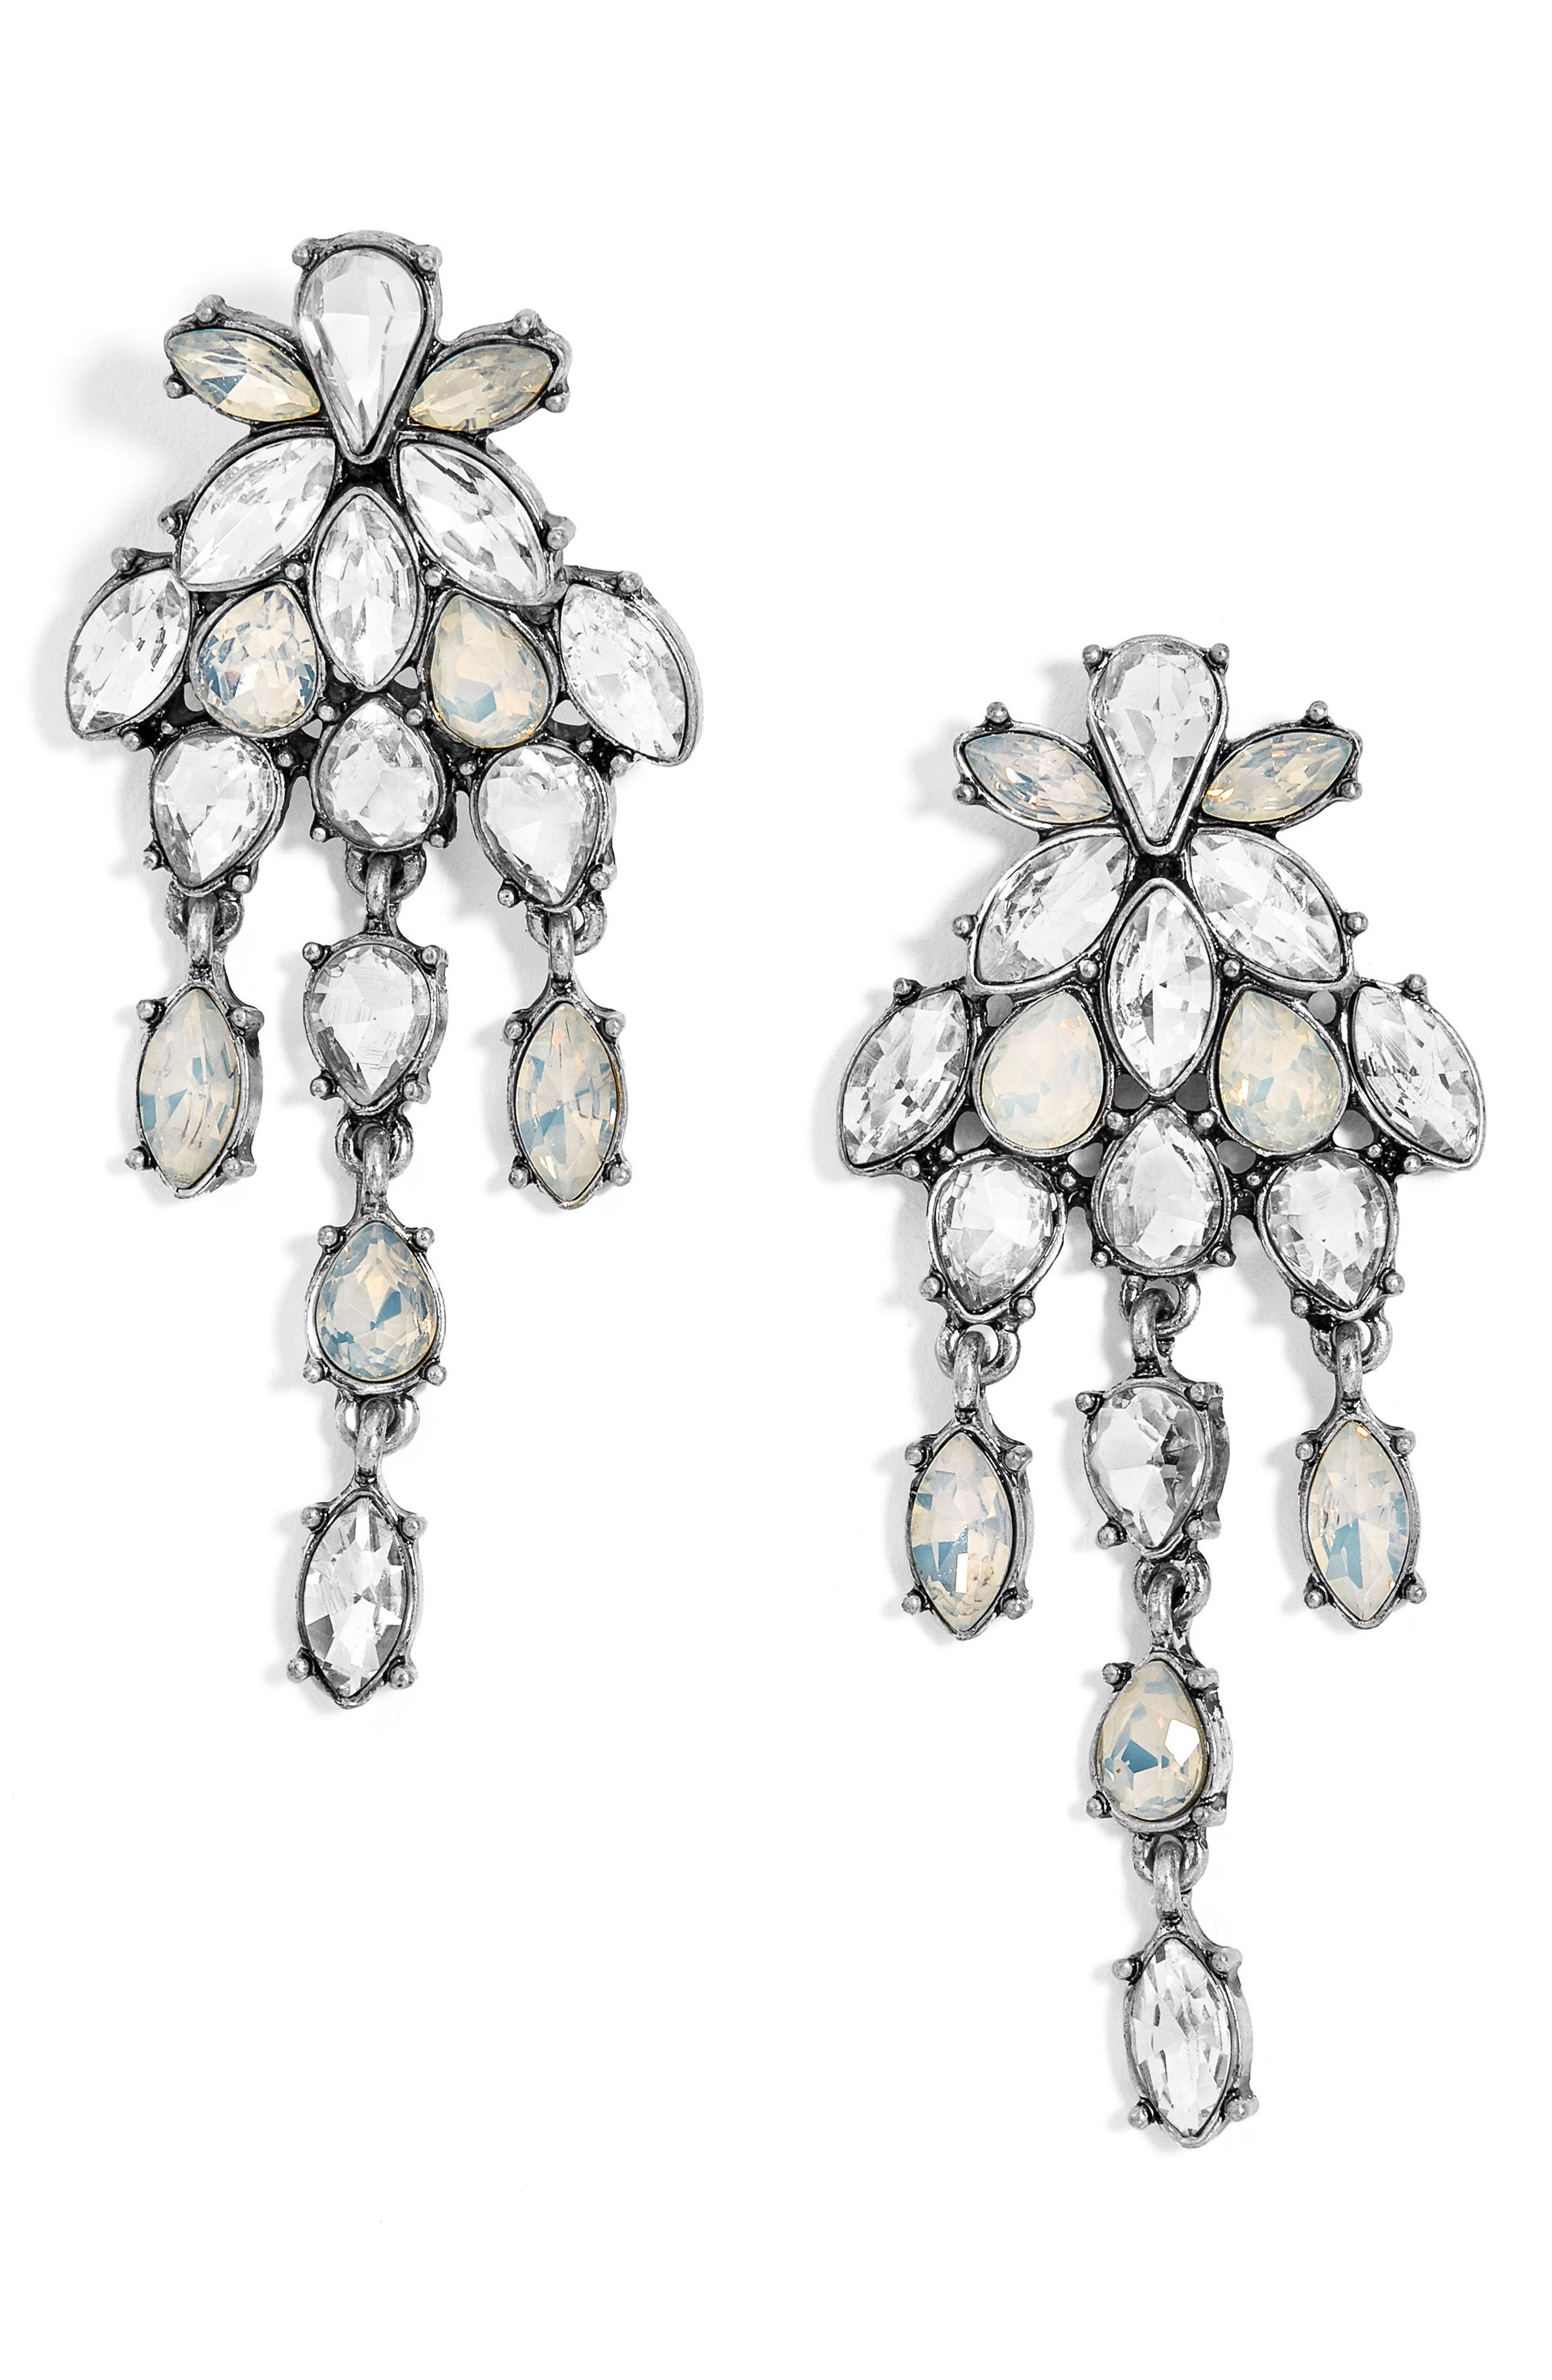 Chandelier Crystal Drop Earrings,                             Main thumbnail 1, color,                             Silver